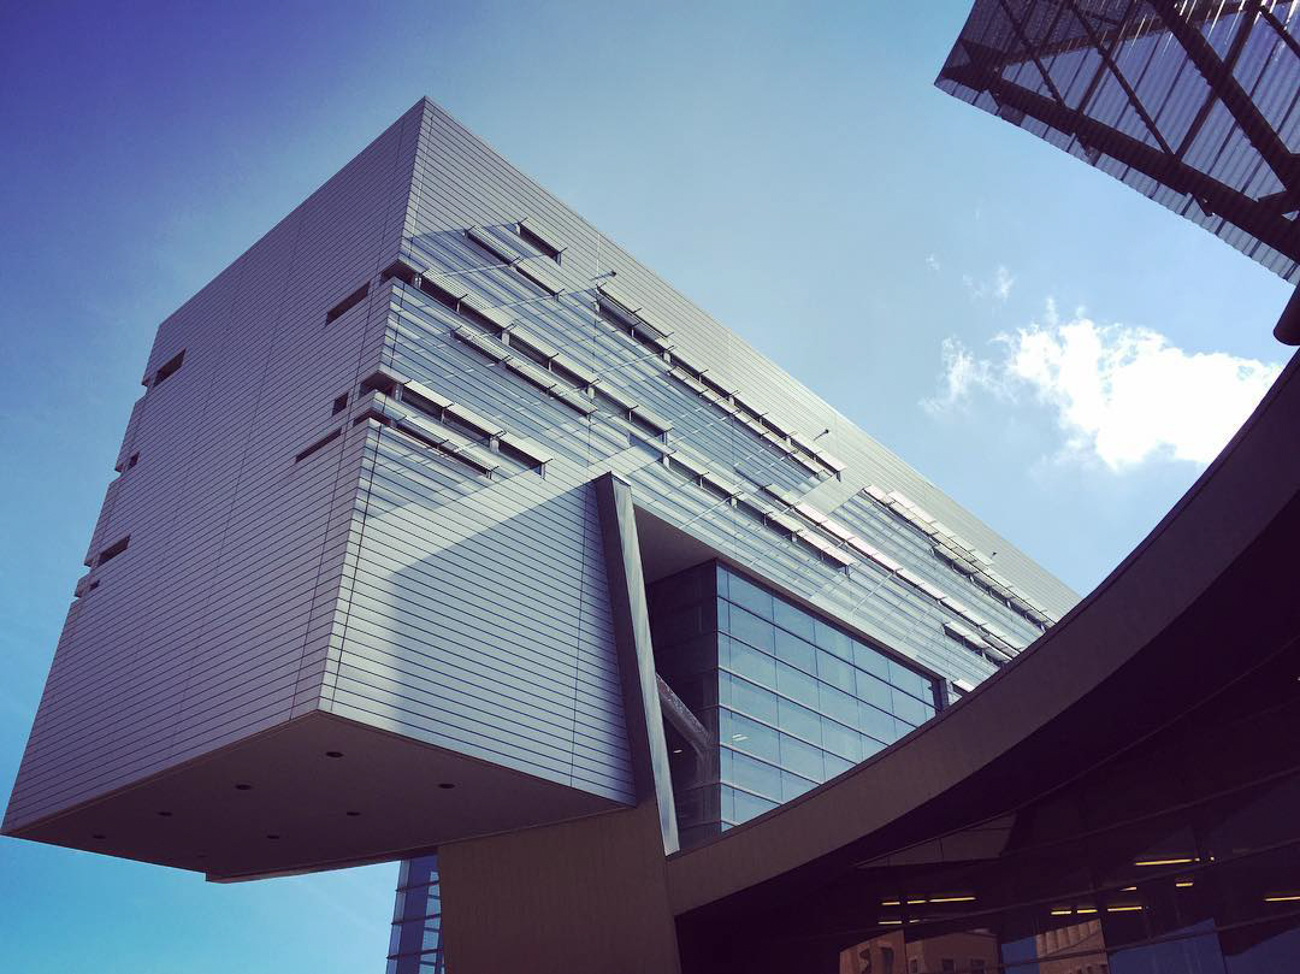 "One of Jim's favorite buildings in Cincinnati: UC Rec Center. ""The way it spatially connects and weaves its interior and exterior design into the UC campus is extraordinary."" / Image: IG user @luissabatermusa // Published: 12.26.16"